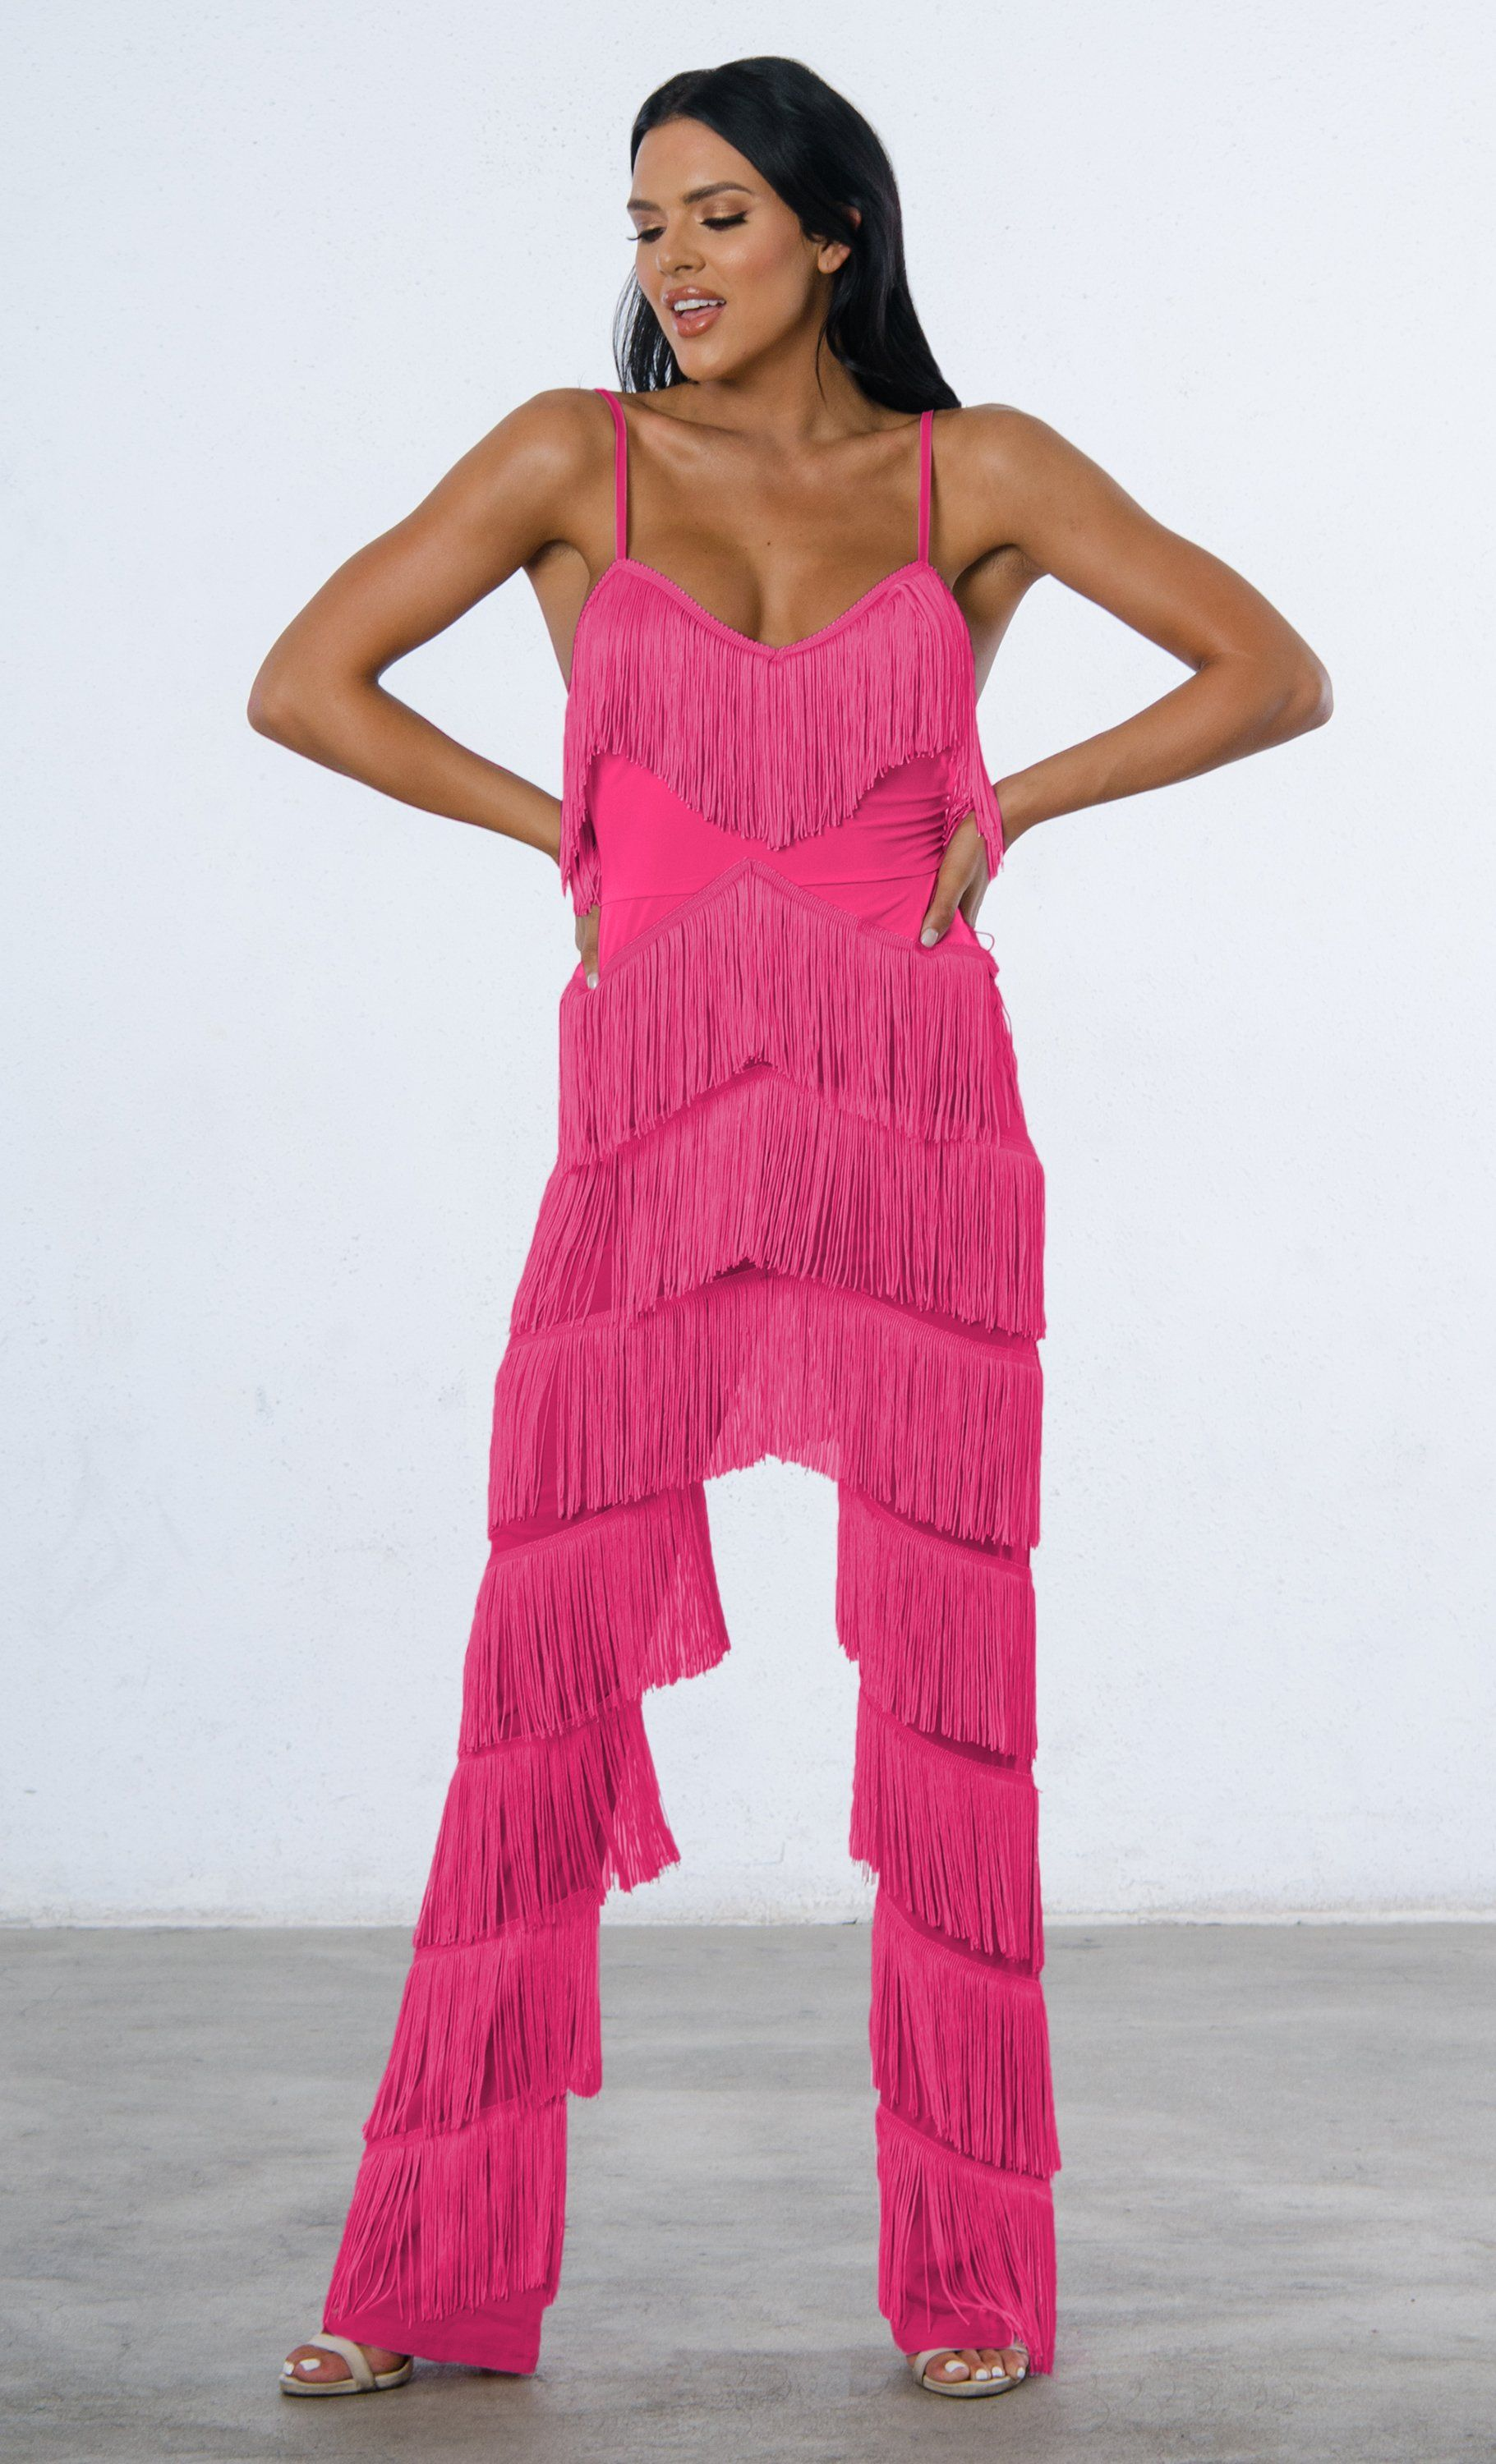 61b09093edc Jumpsuits. Fishnet. Tulle.  https   indiexo.com collections new-arrivals products